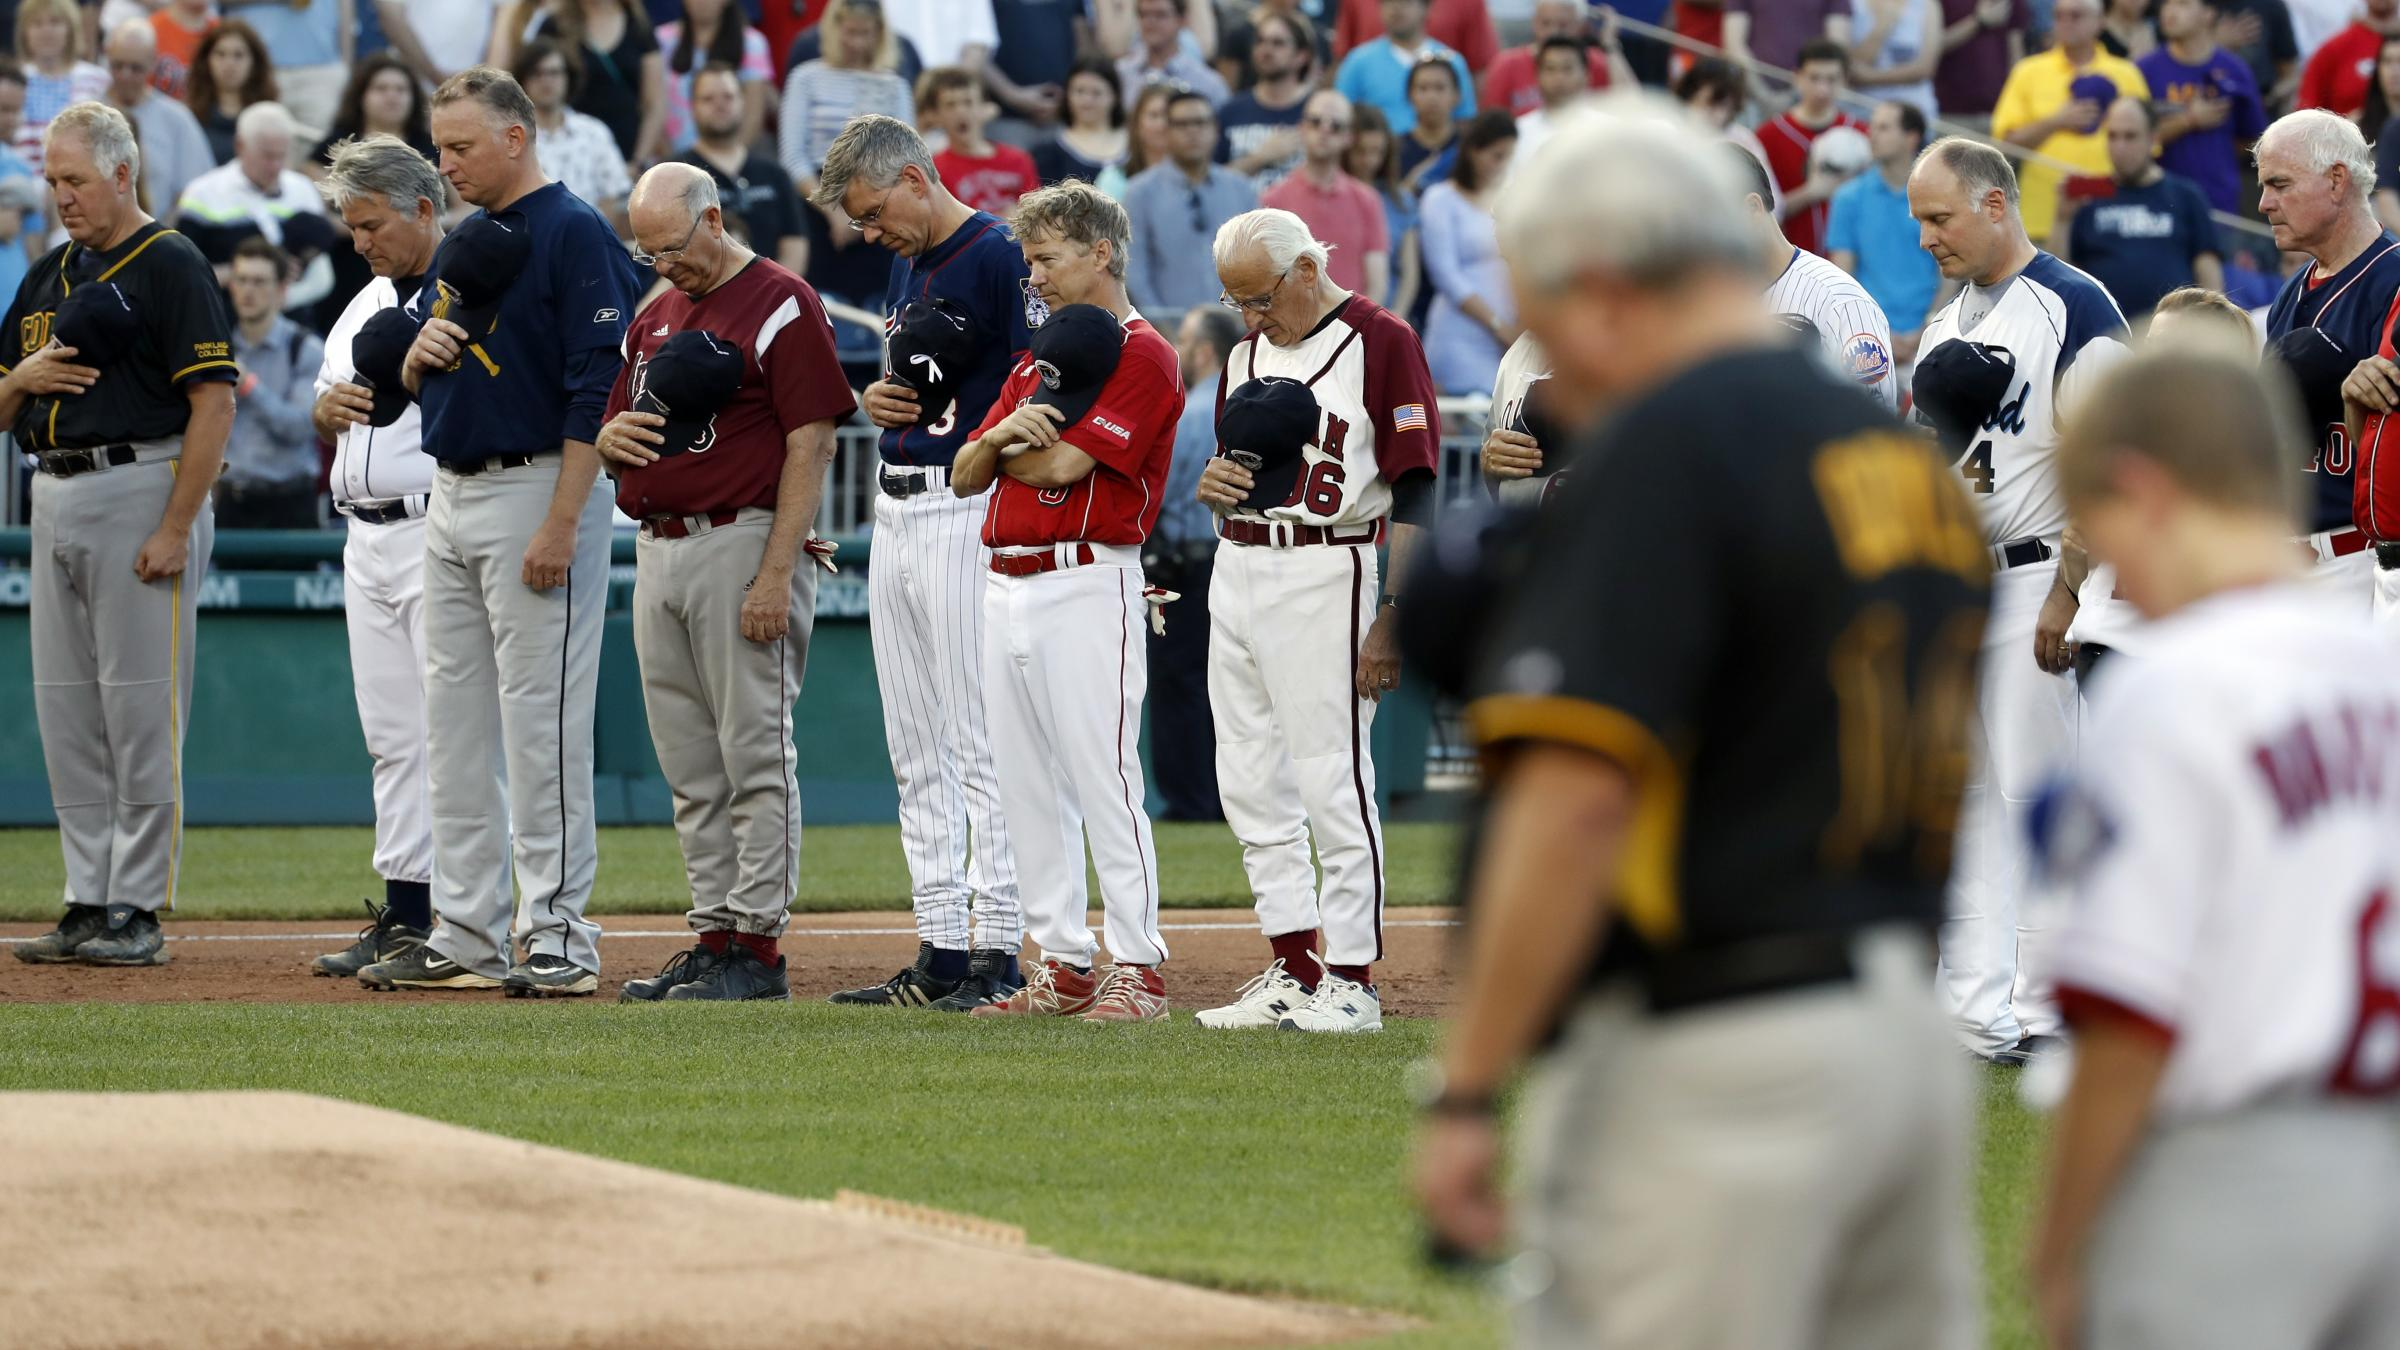 Democrats and Republicans show unity on ballfield to honor wounded colleague